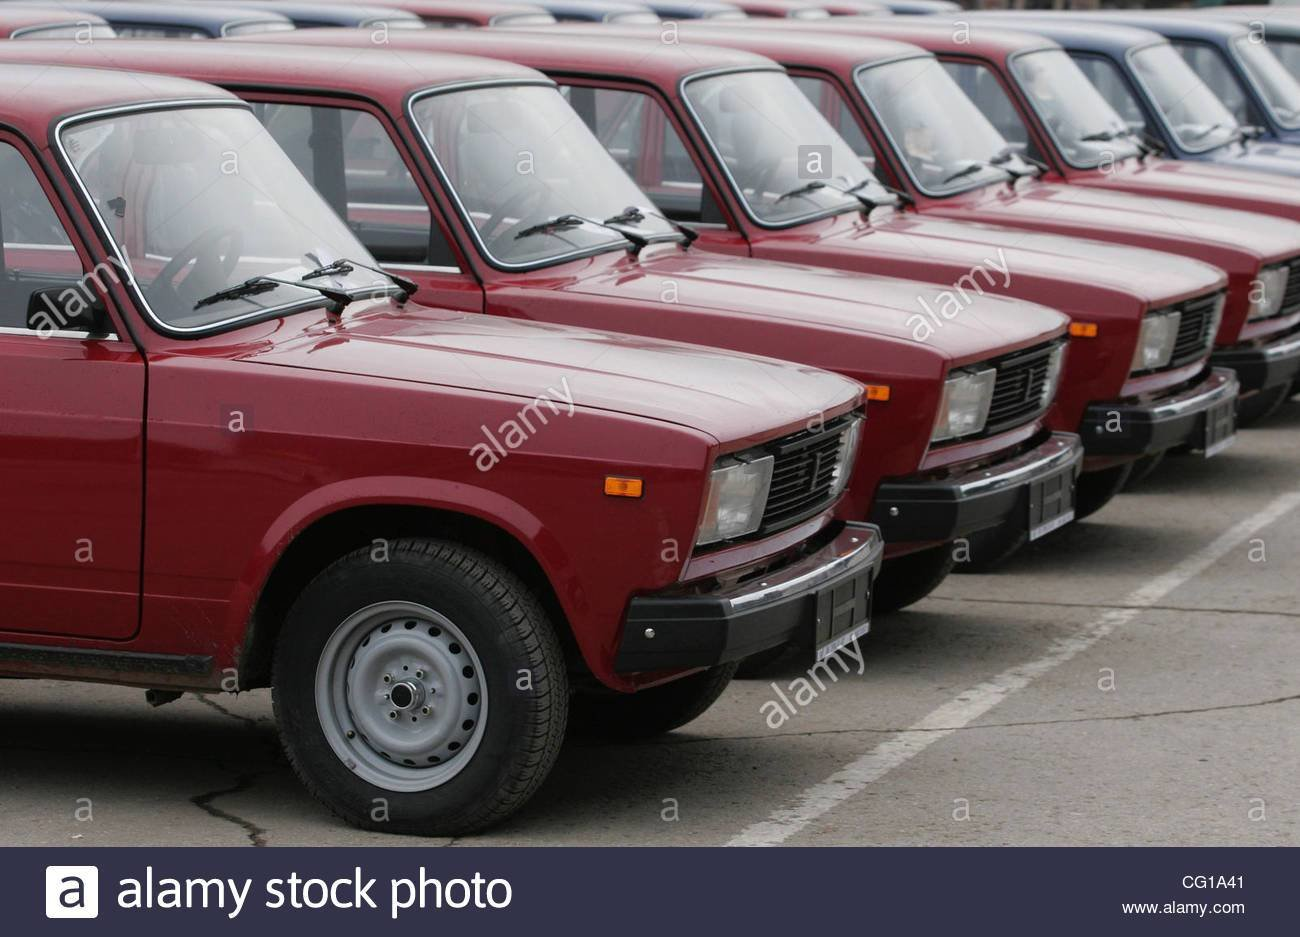 New Brand New Russian Cars Lada Ready For Sale Lada Zhiguli On This Month